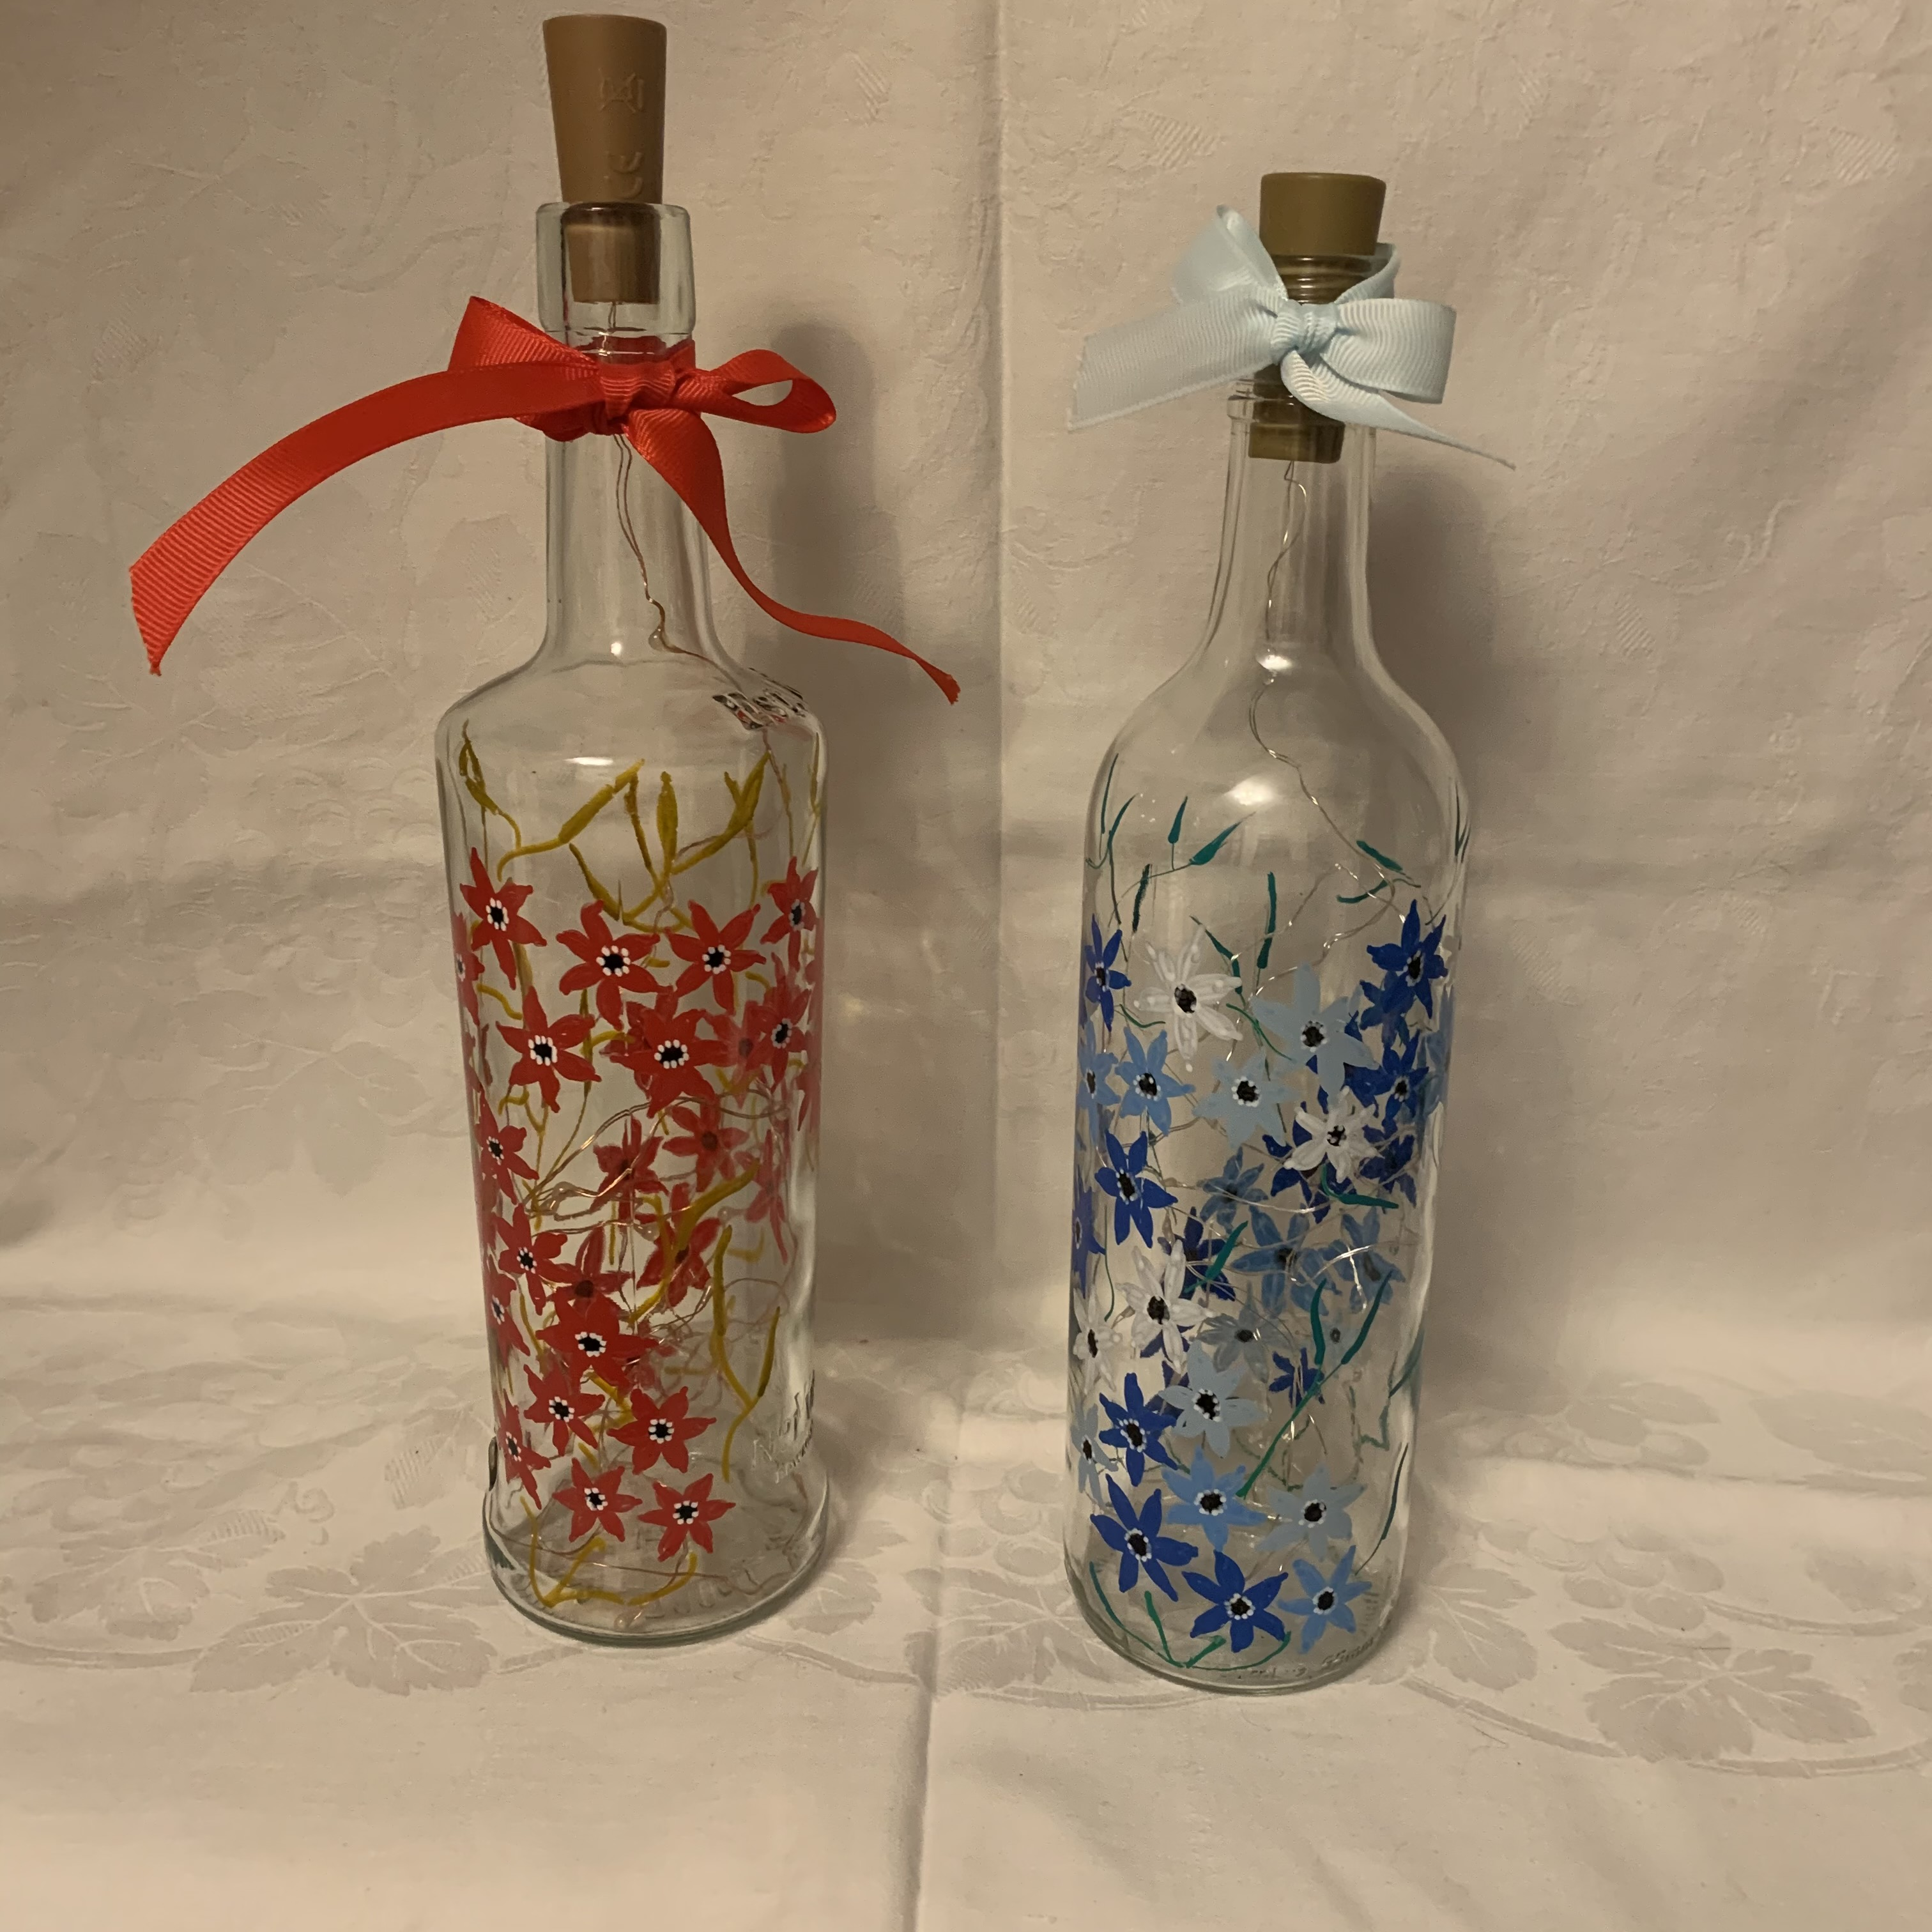 Bottle Hand Painted Flowers3 B